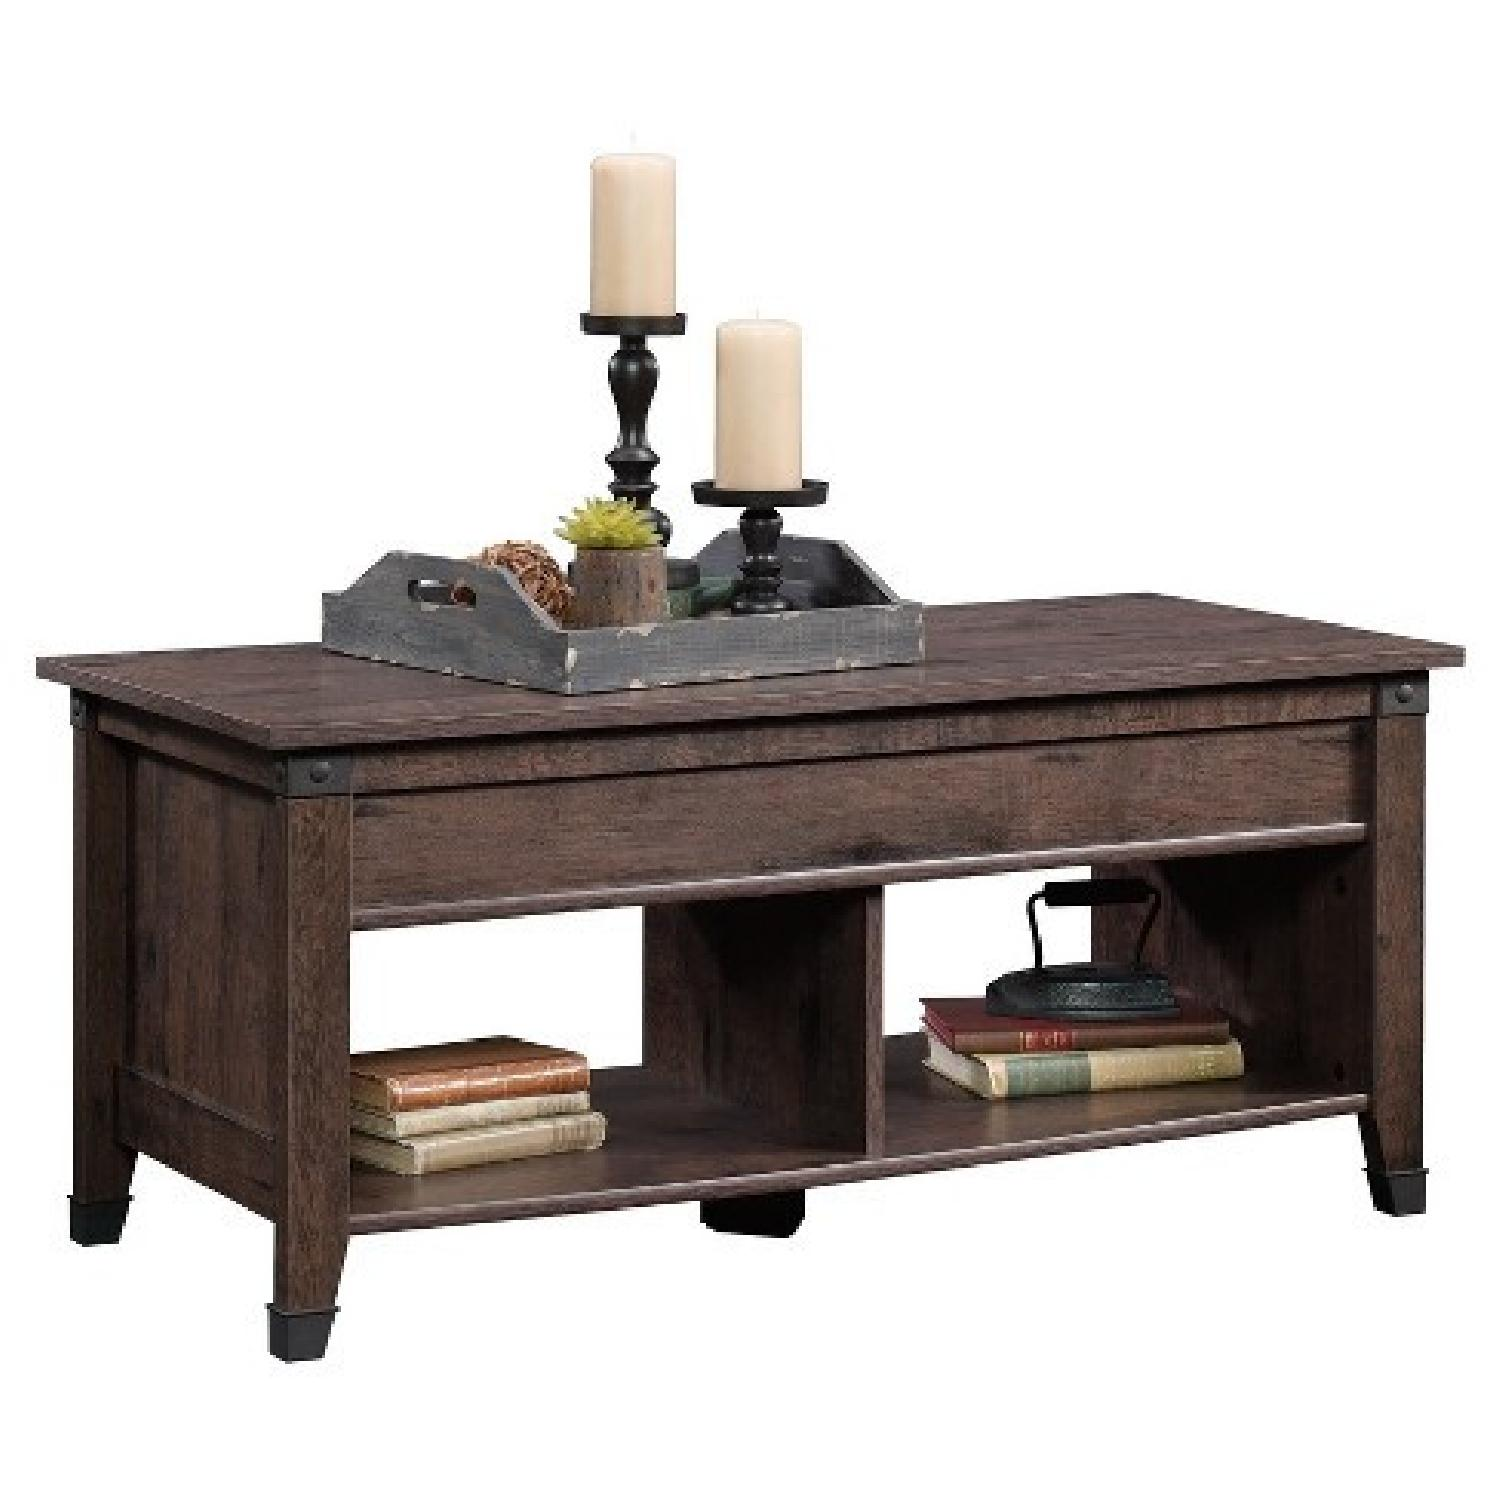 Sauder Carson Forge Lift Top Coffee Table - image-0